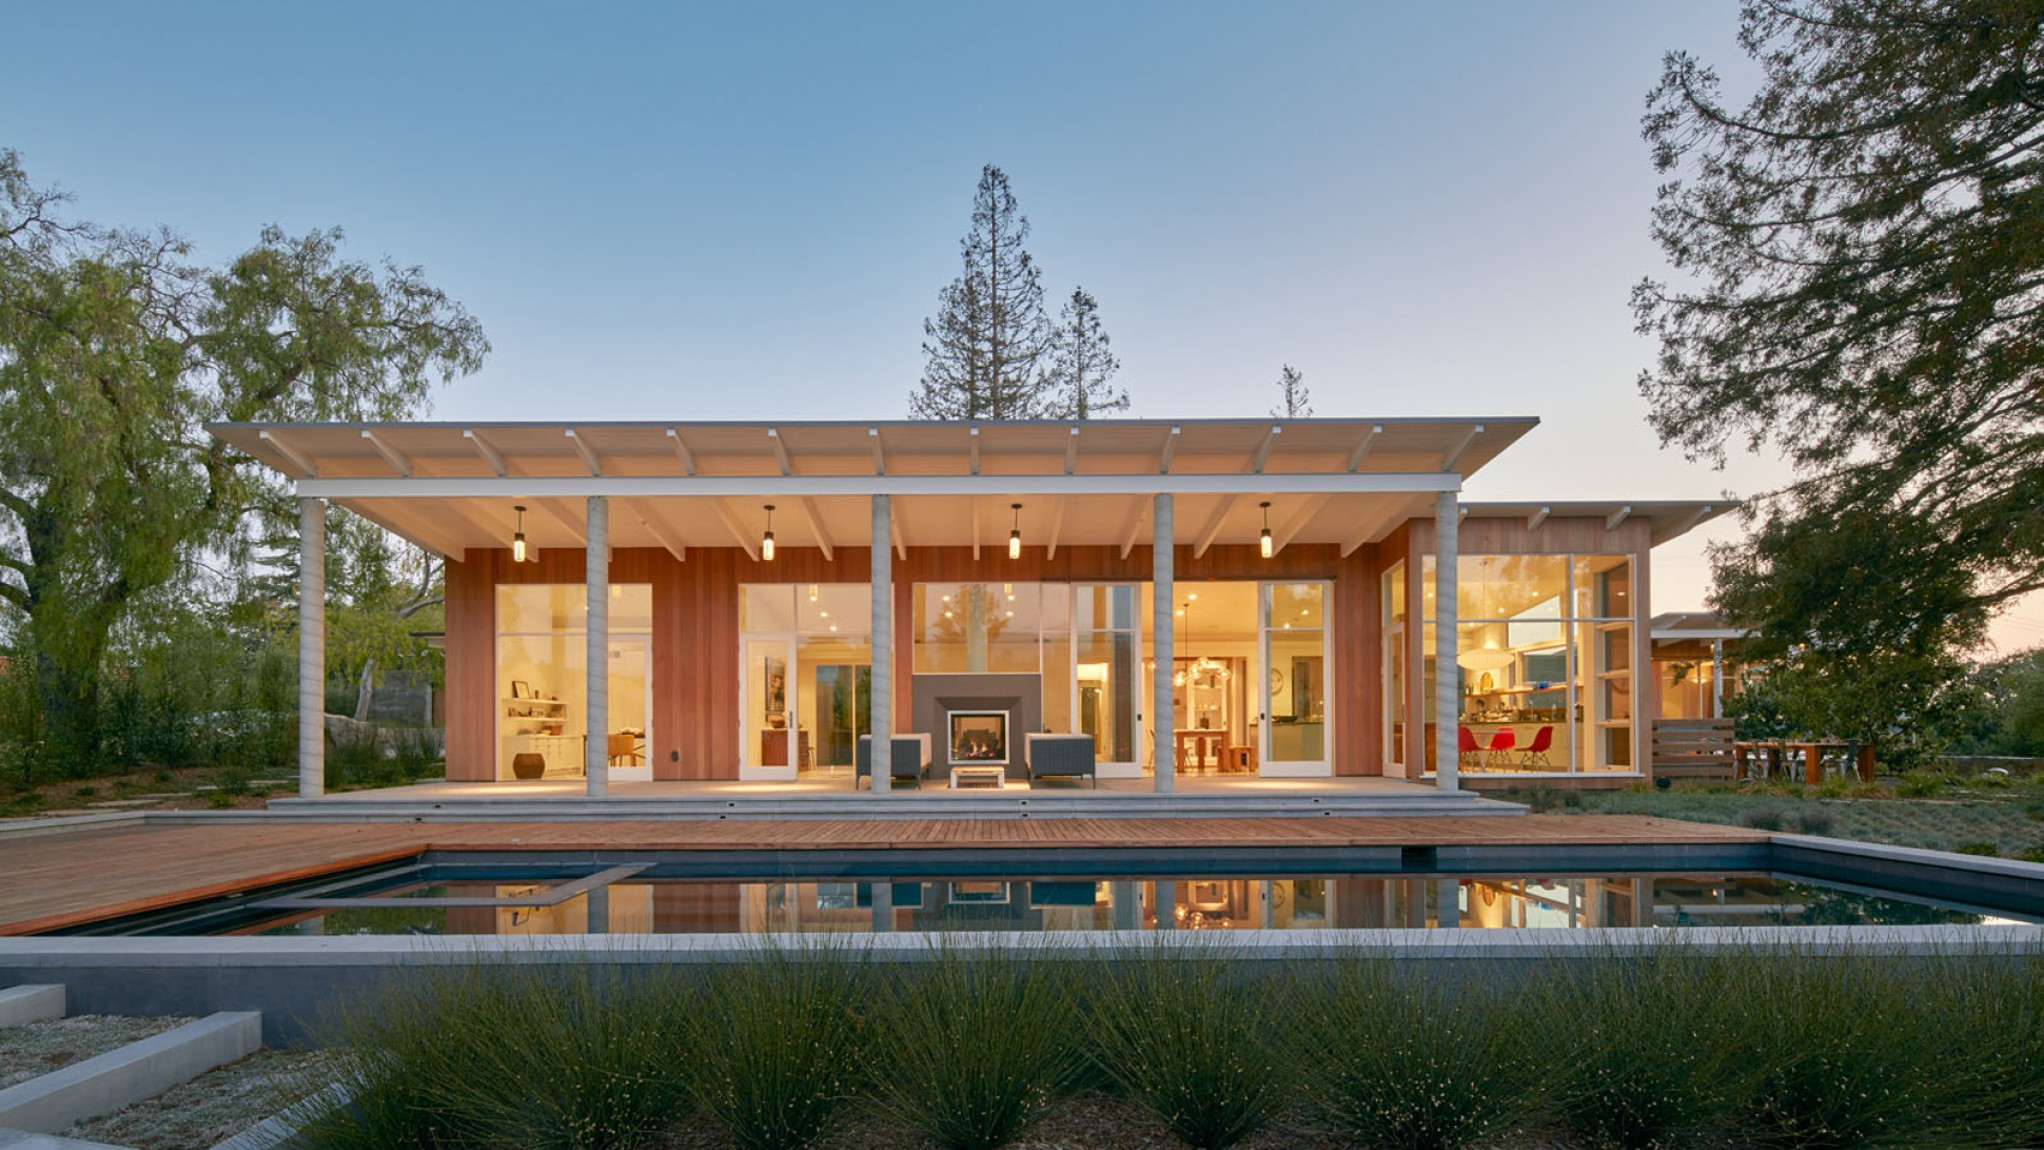 California Lifestyle Vector: Malcolm Davis Architecture Cedar Clad Home Silicon Valley California Outdoor Lifestyle